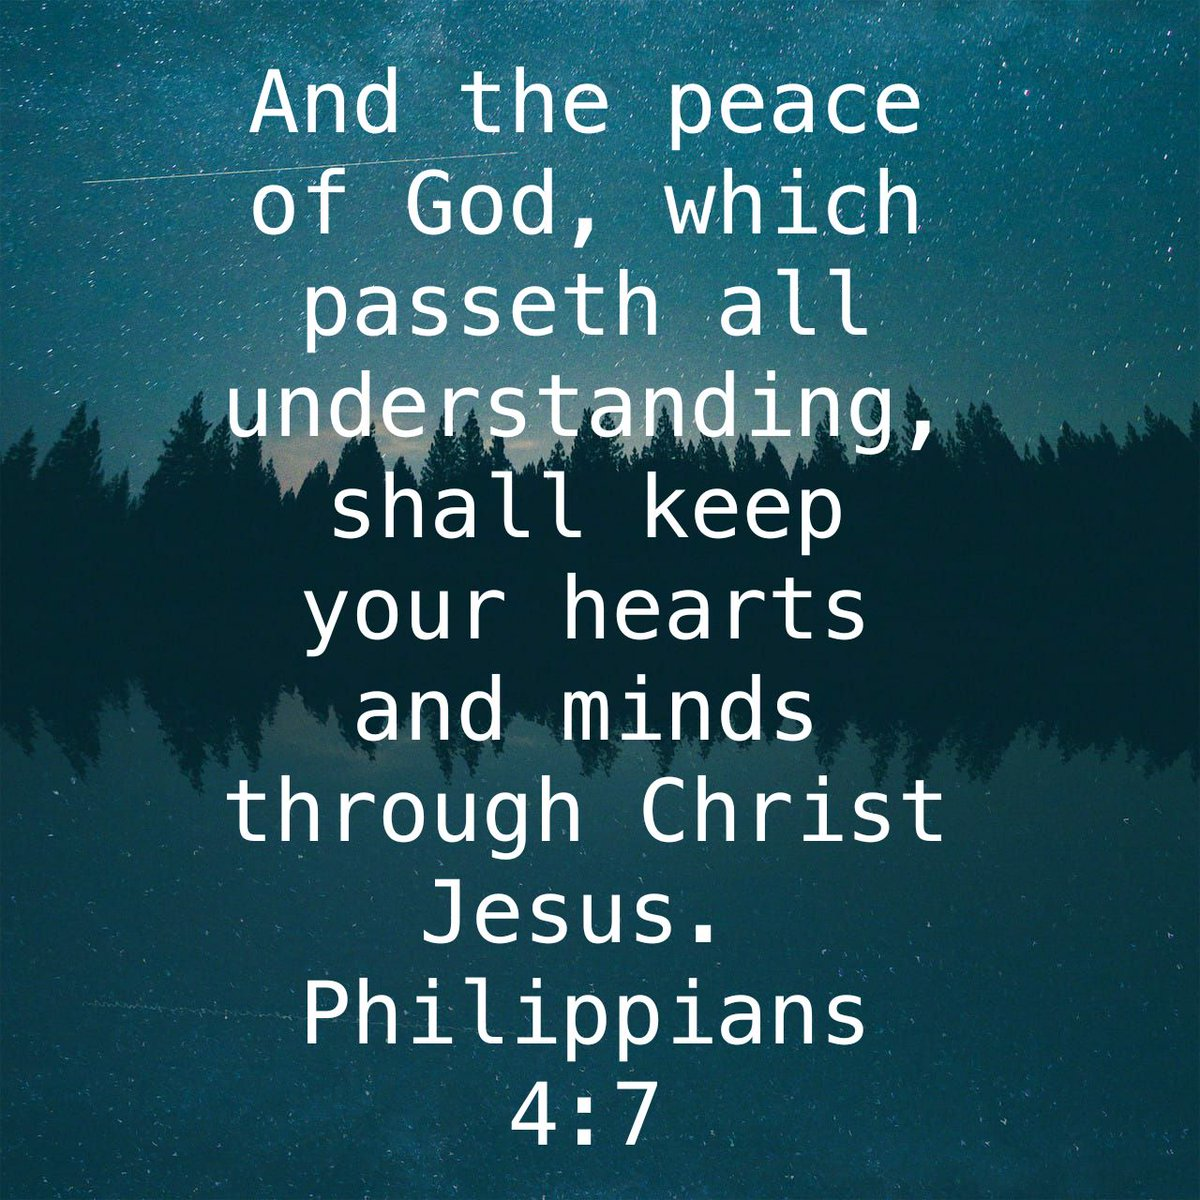 And the peace of God, which passeth all understanding, shall keep your hearts and minds through Christ Jesus. Philippians 4:7 KJV